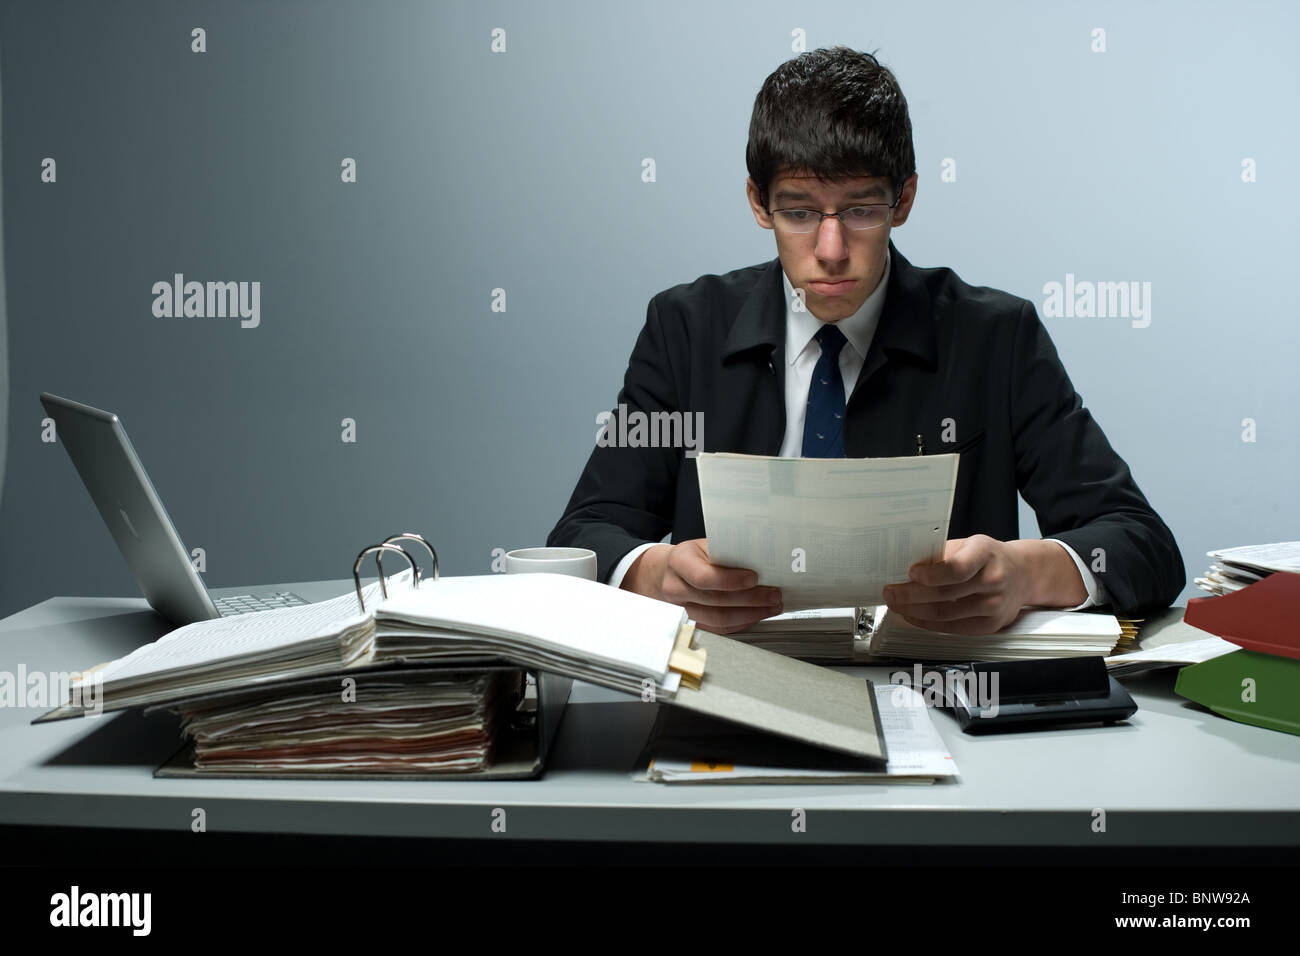 Man reading business correspondence at an office - Stock Image